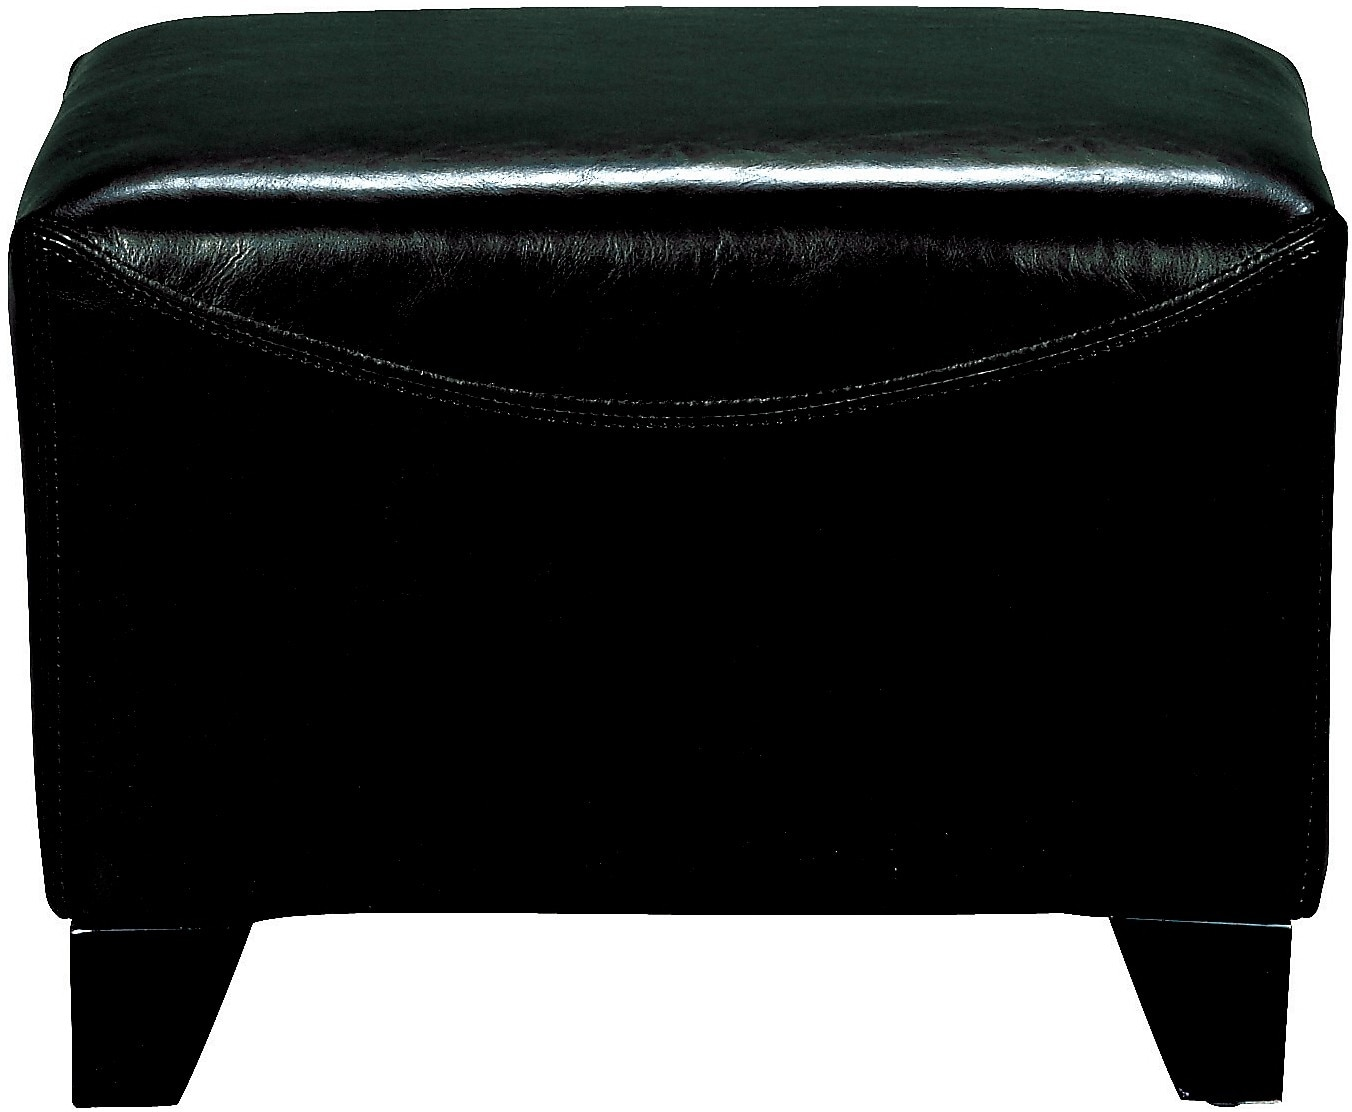 Living Room Furniture - Bonded Leather Ottoman - Black